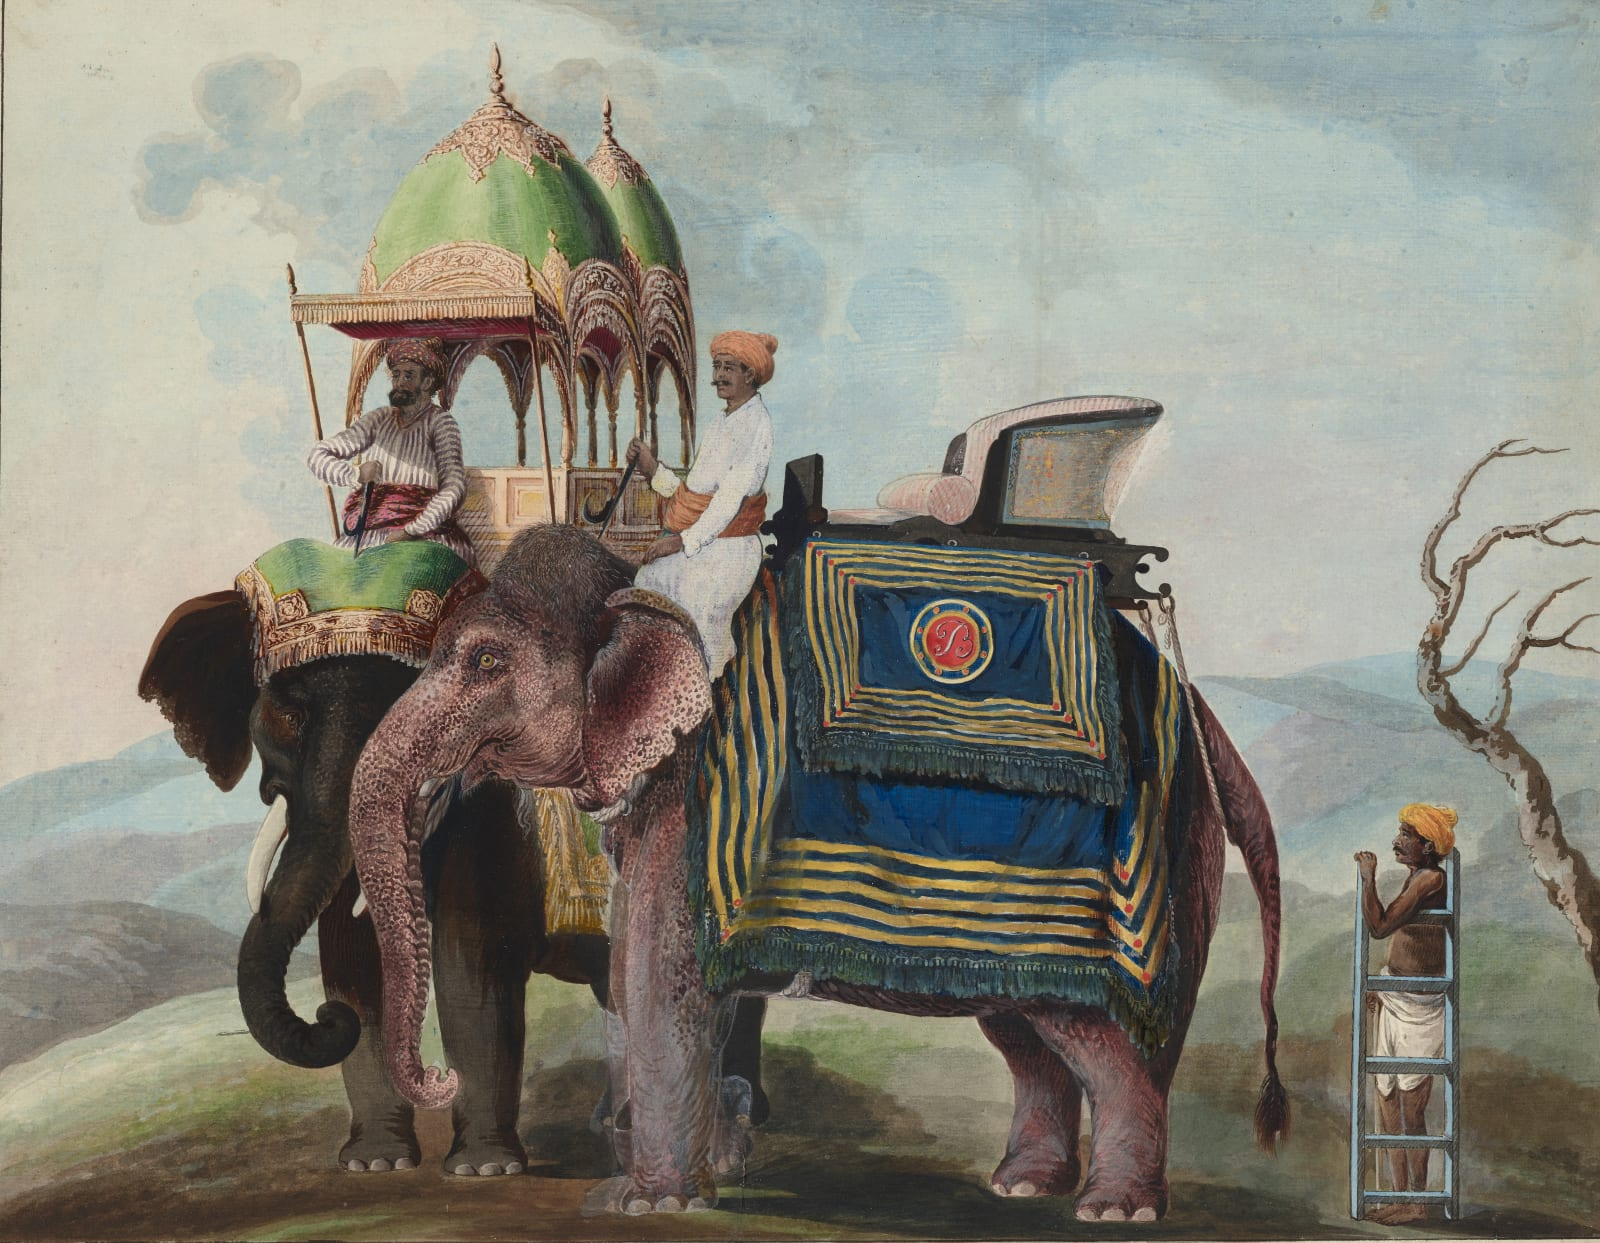 Two caparisoned elephants, in a hilly landscape. It is possible that the 'B' might refer to Judge Edward Eyre Burgess who was appointed judge at the Murshidabad adaulat in 1772., Murshidabad, 1795-1807